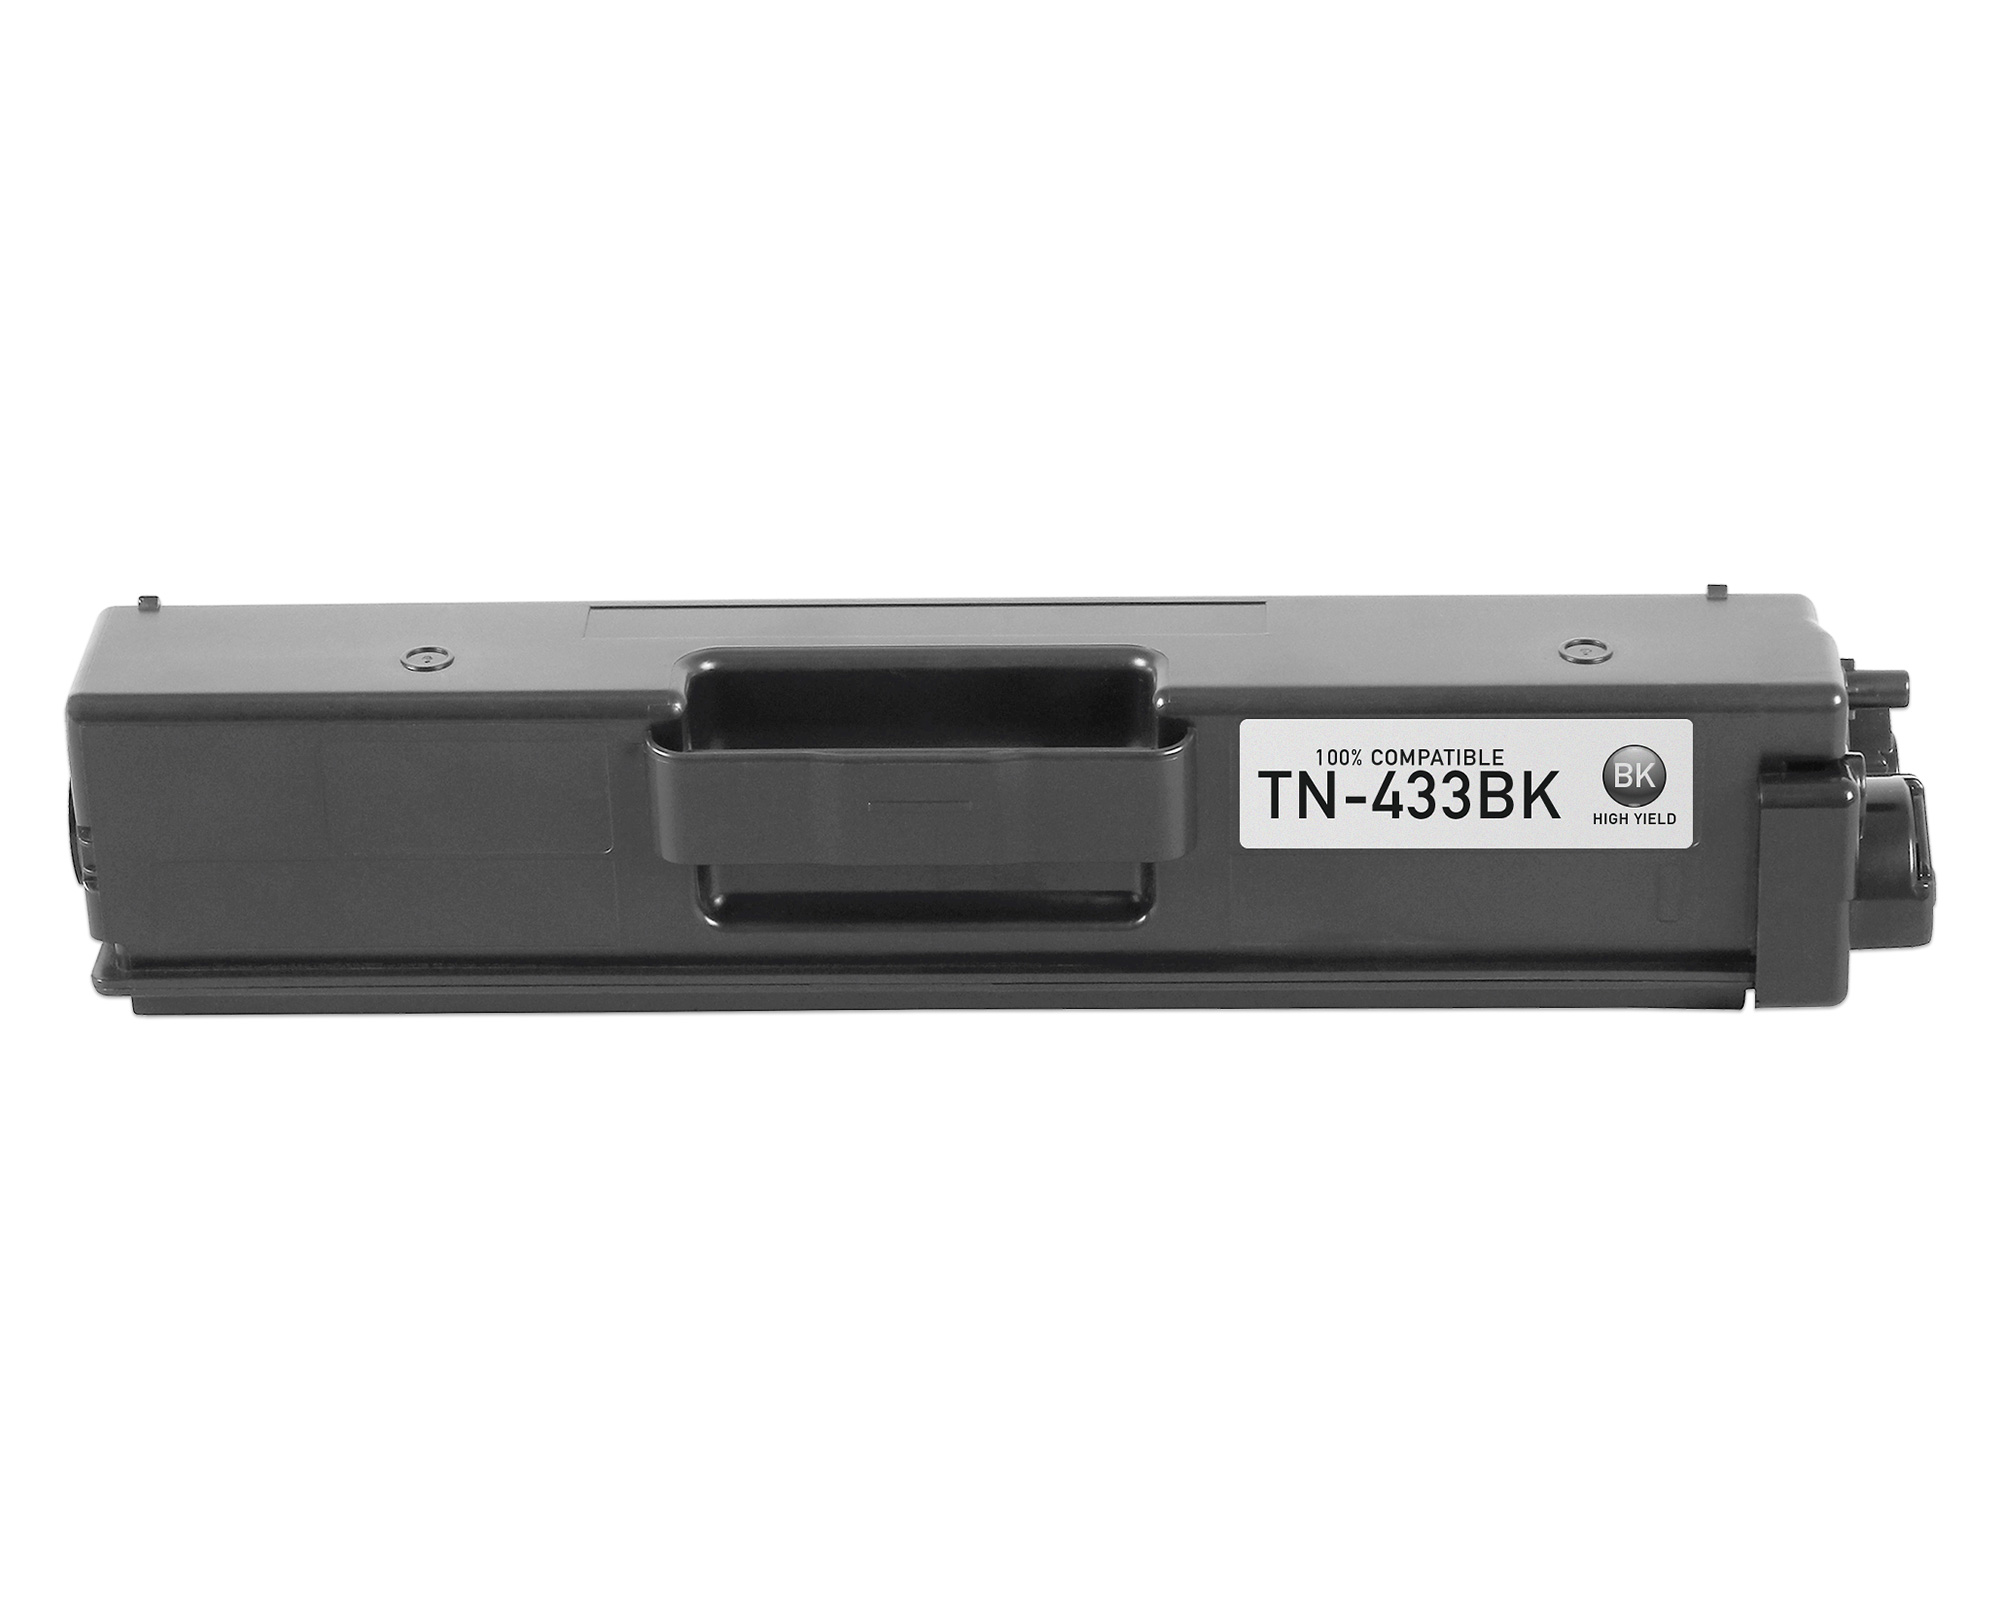 Generic Toner Black-Toner-Cartridge-High-Yield-Brother-MFC-L8900